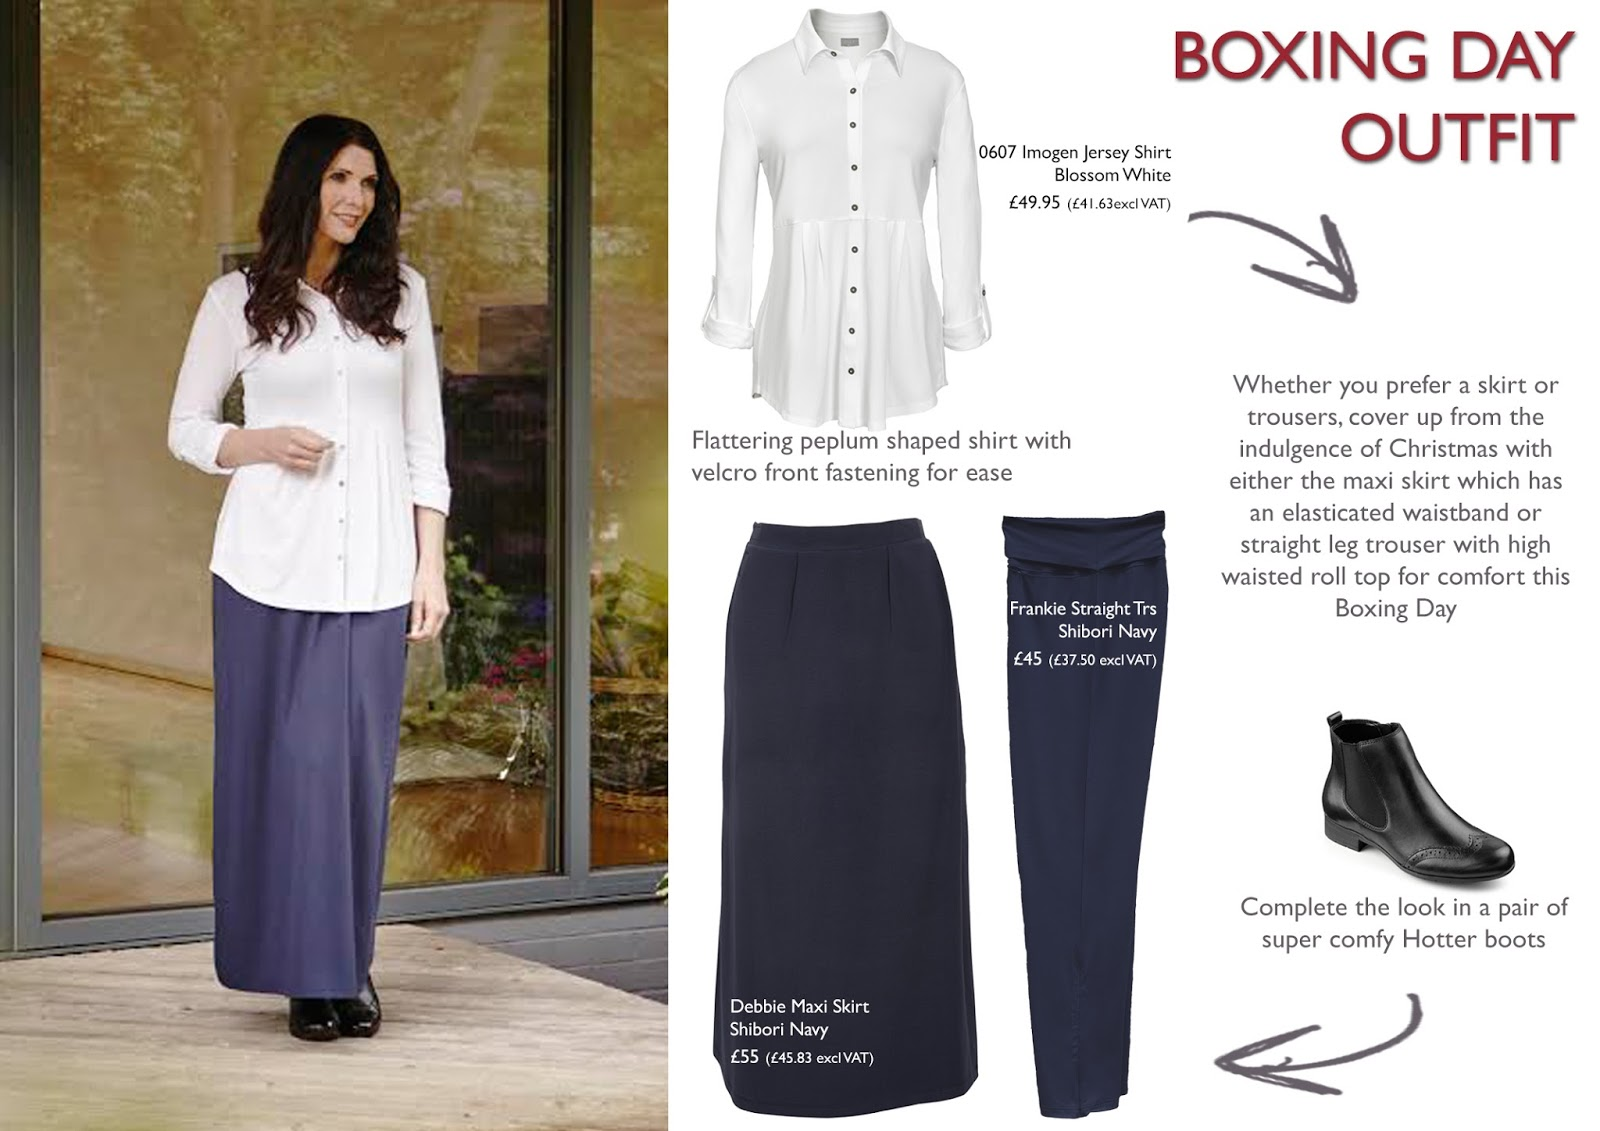 31e8b78d94 Whether you prefer trousers or skirts, cover up with these sleek styles  which all have stretched waistbands for extra comfort... comfort you may  need after ...